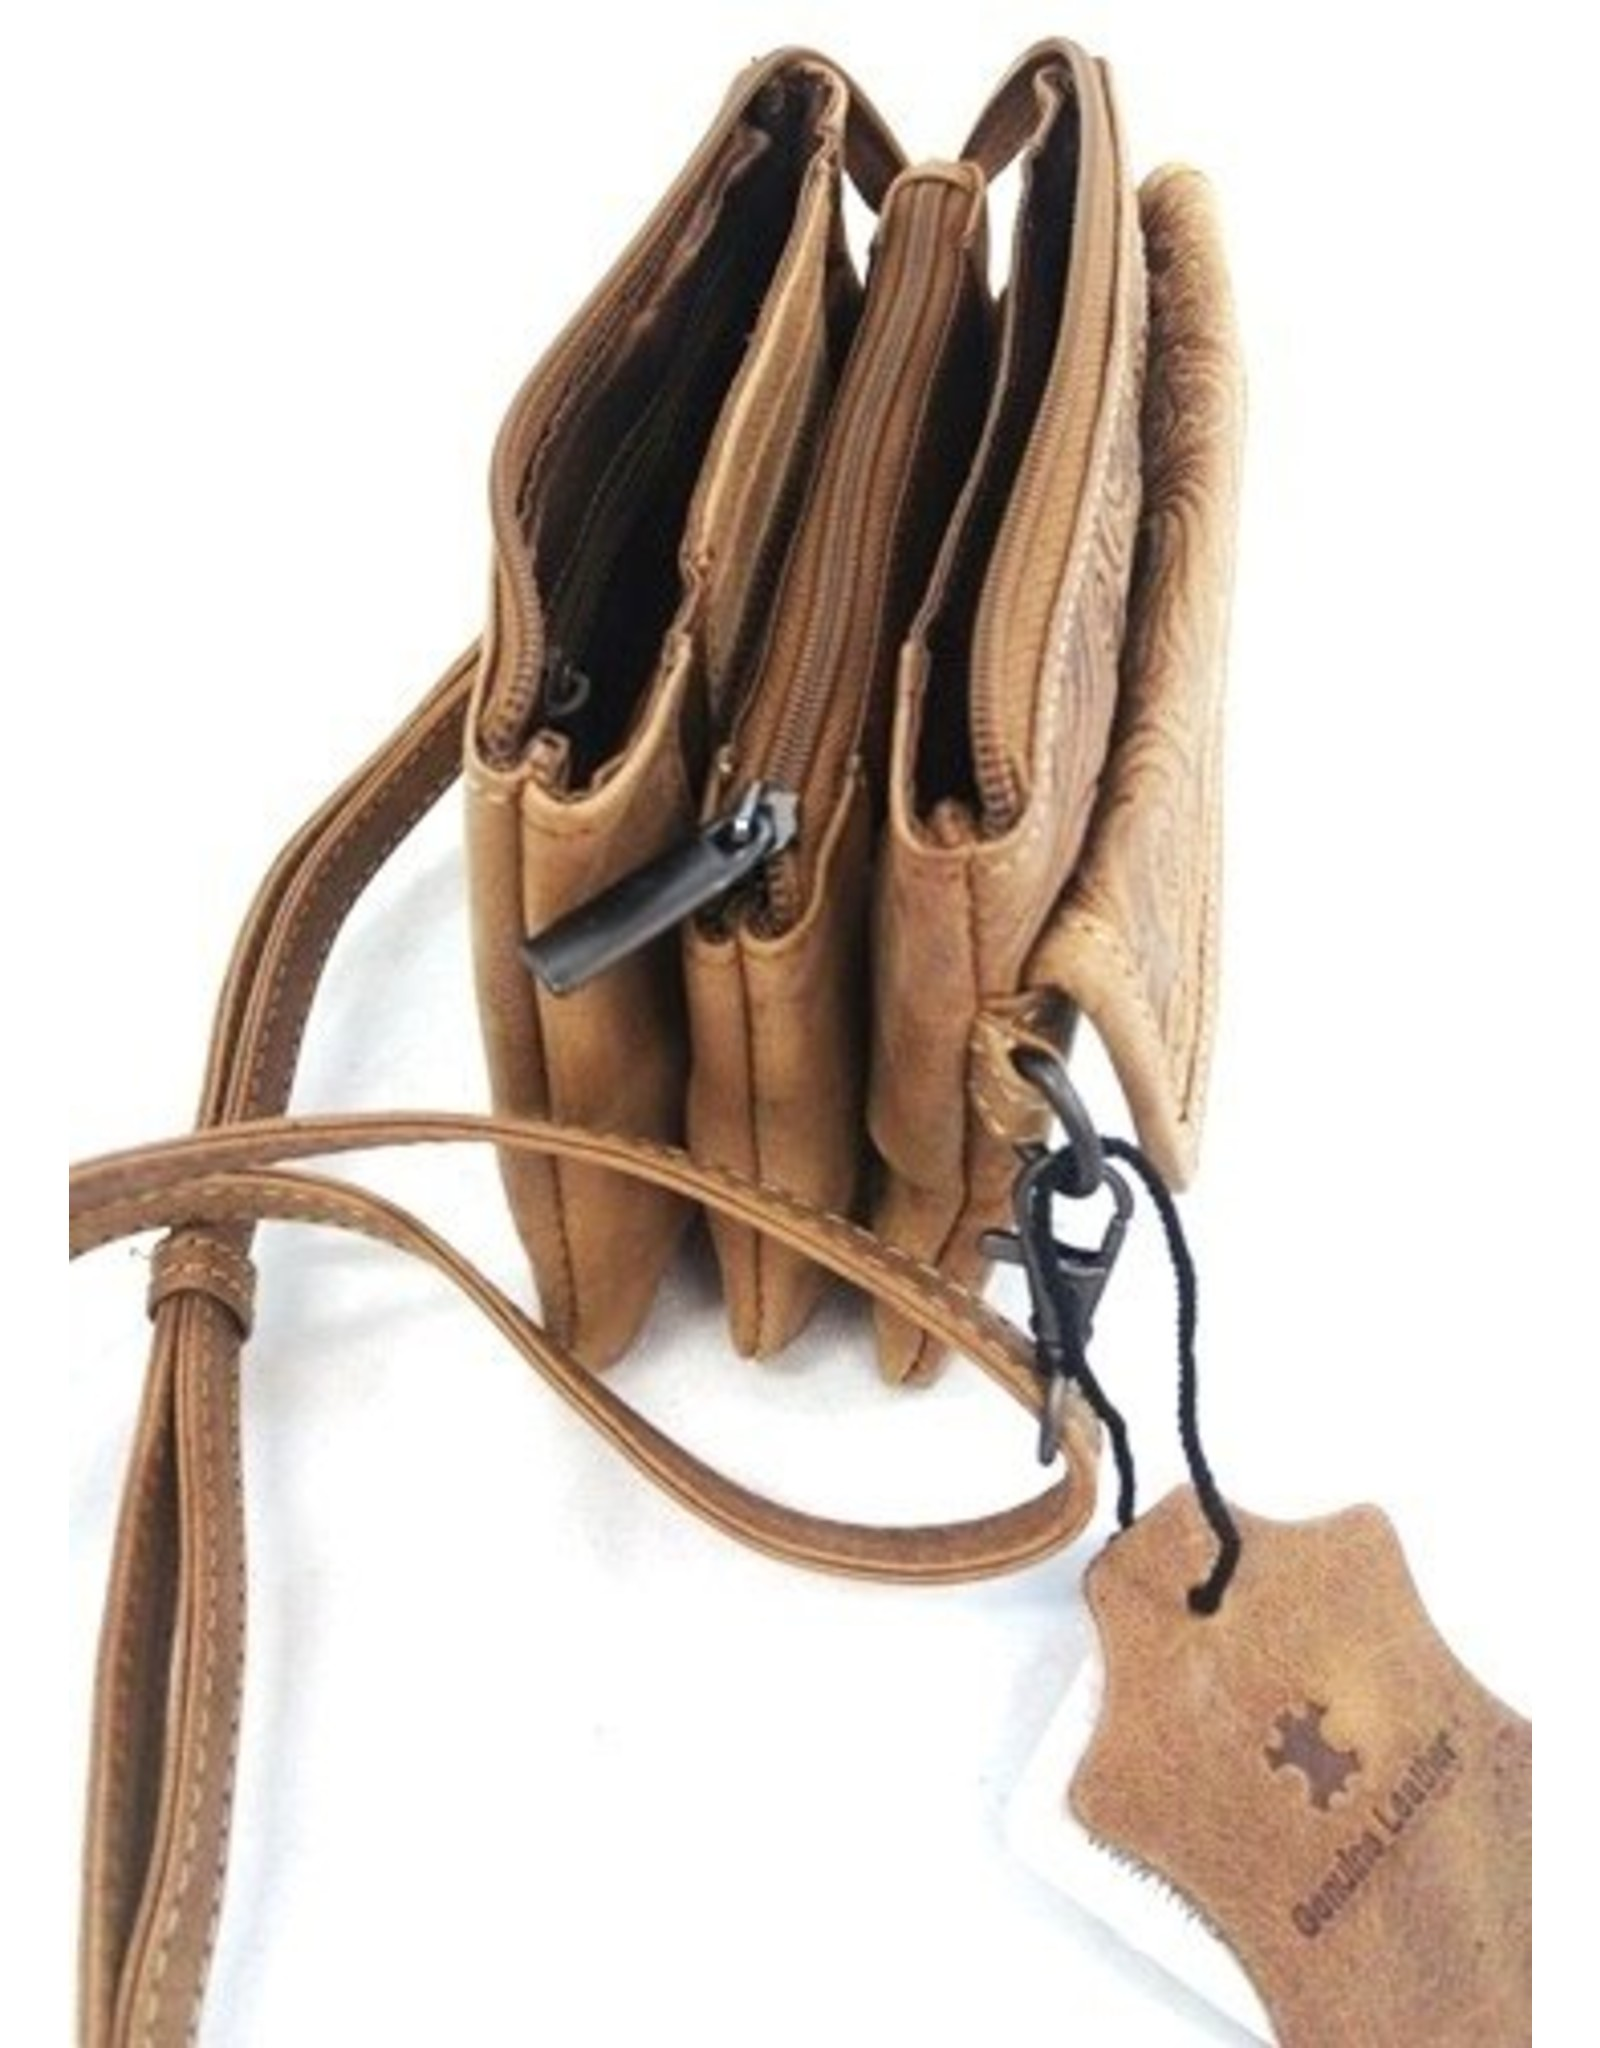 Beasy Bag Leren tassen - Beasy Bag Leren Damestas Naturel